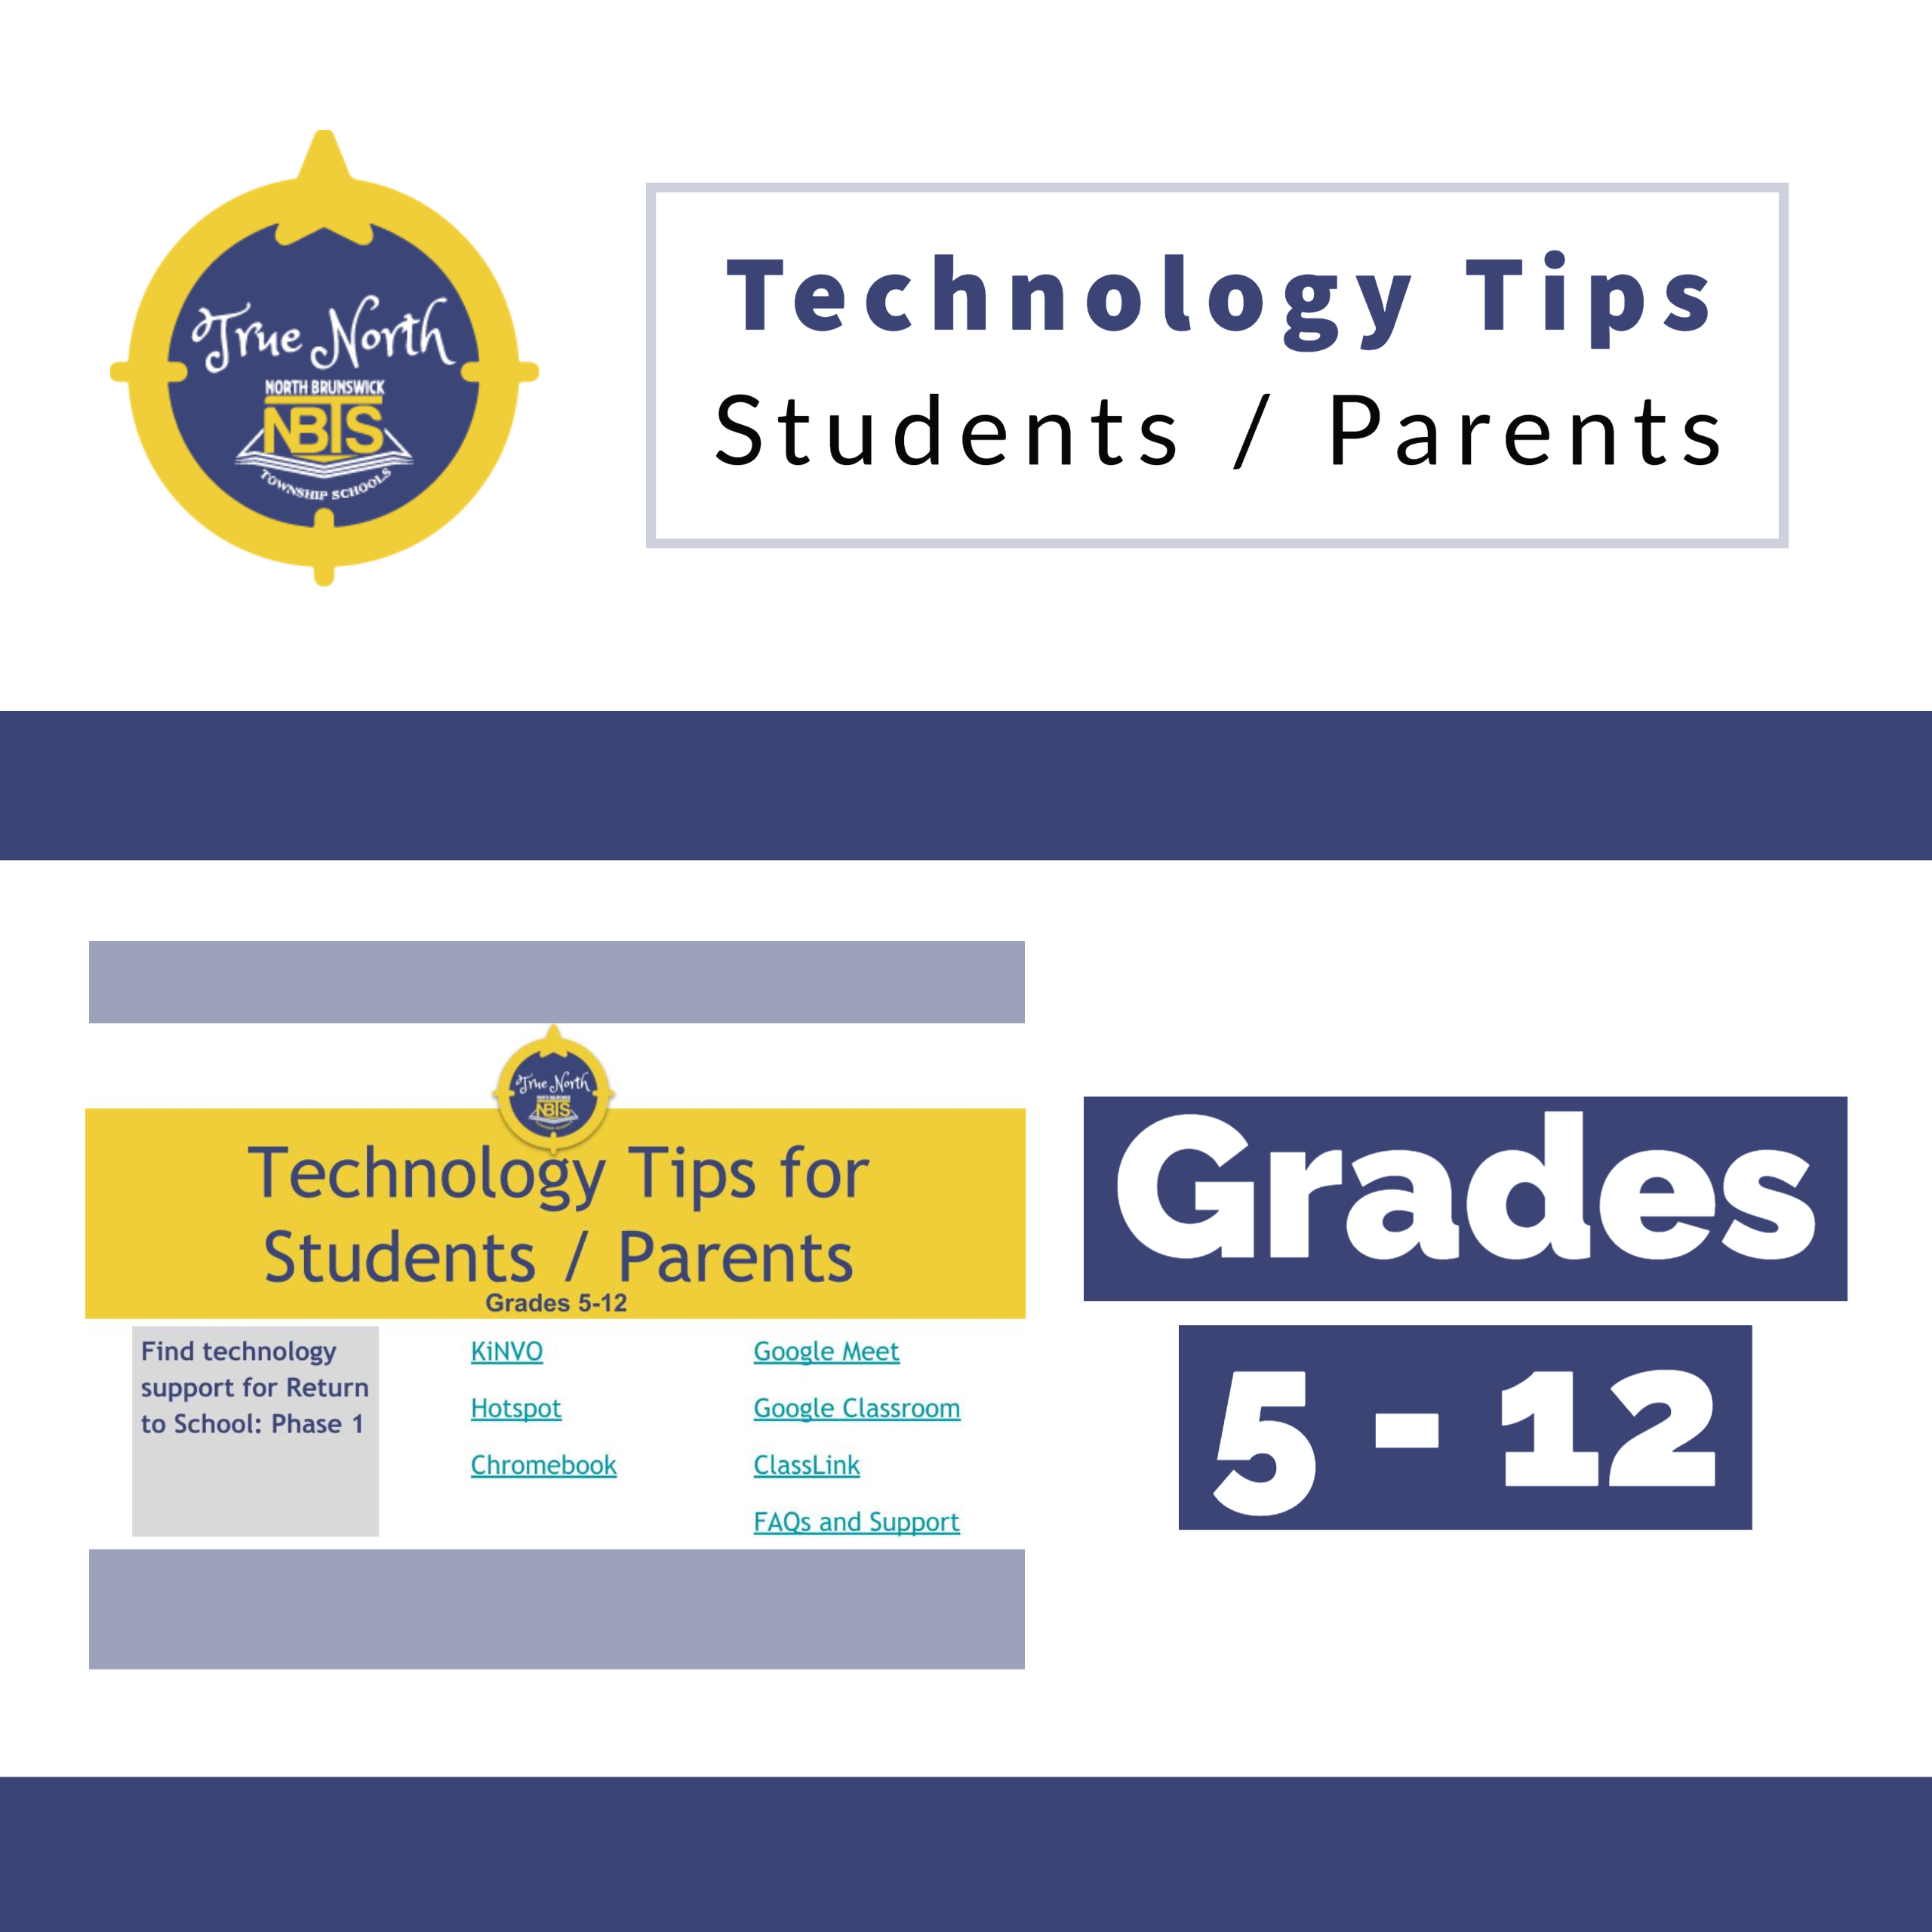 Technology Tips 5-12